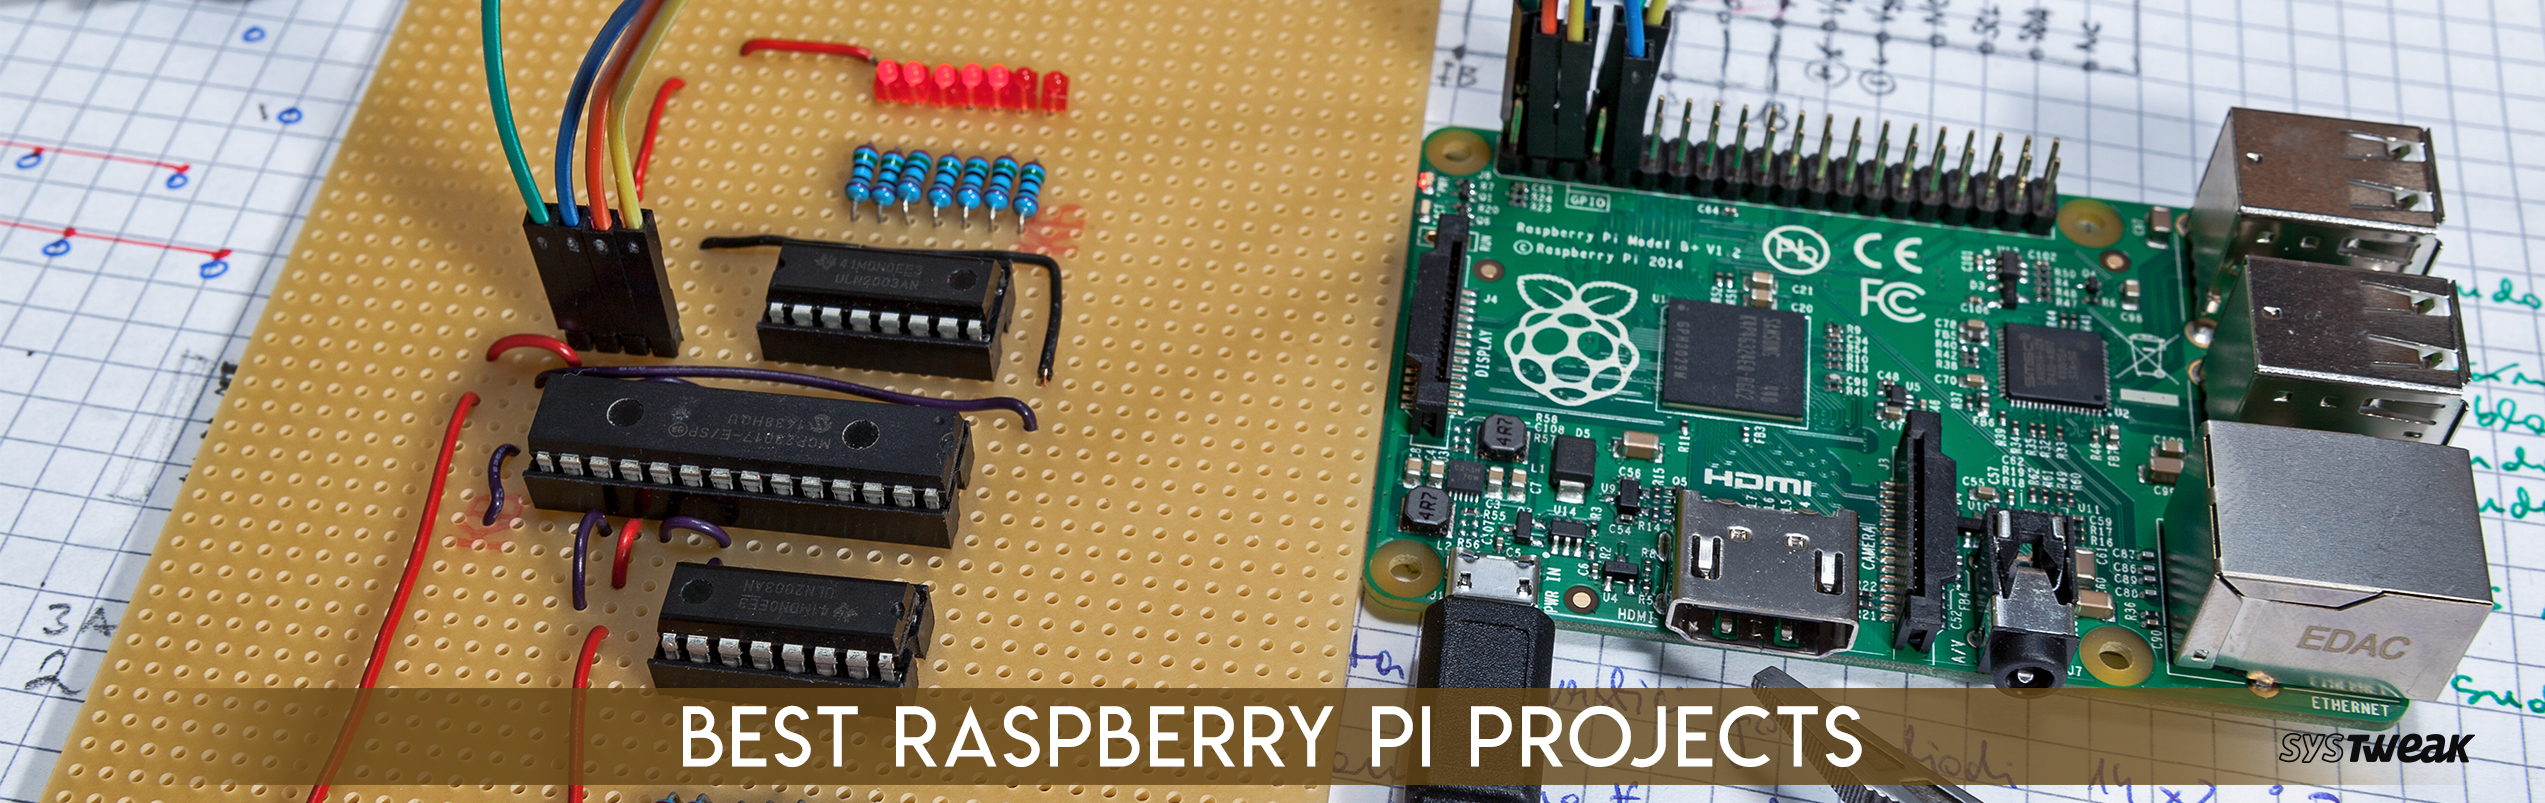 10 Best Raspberry Pi Projects 2018